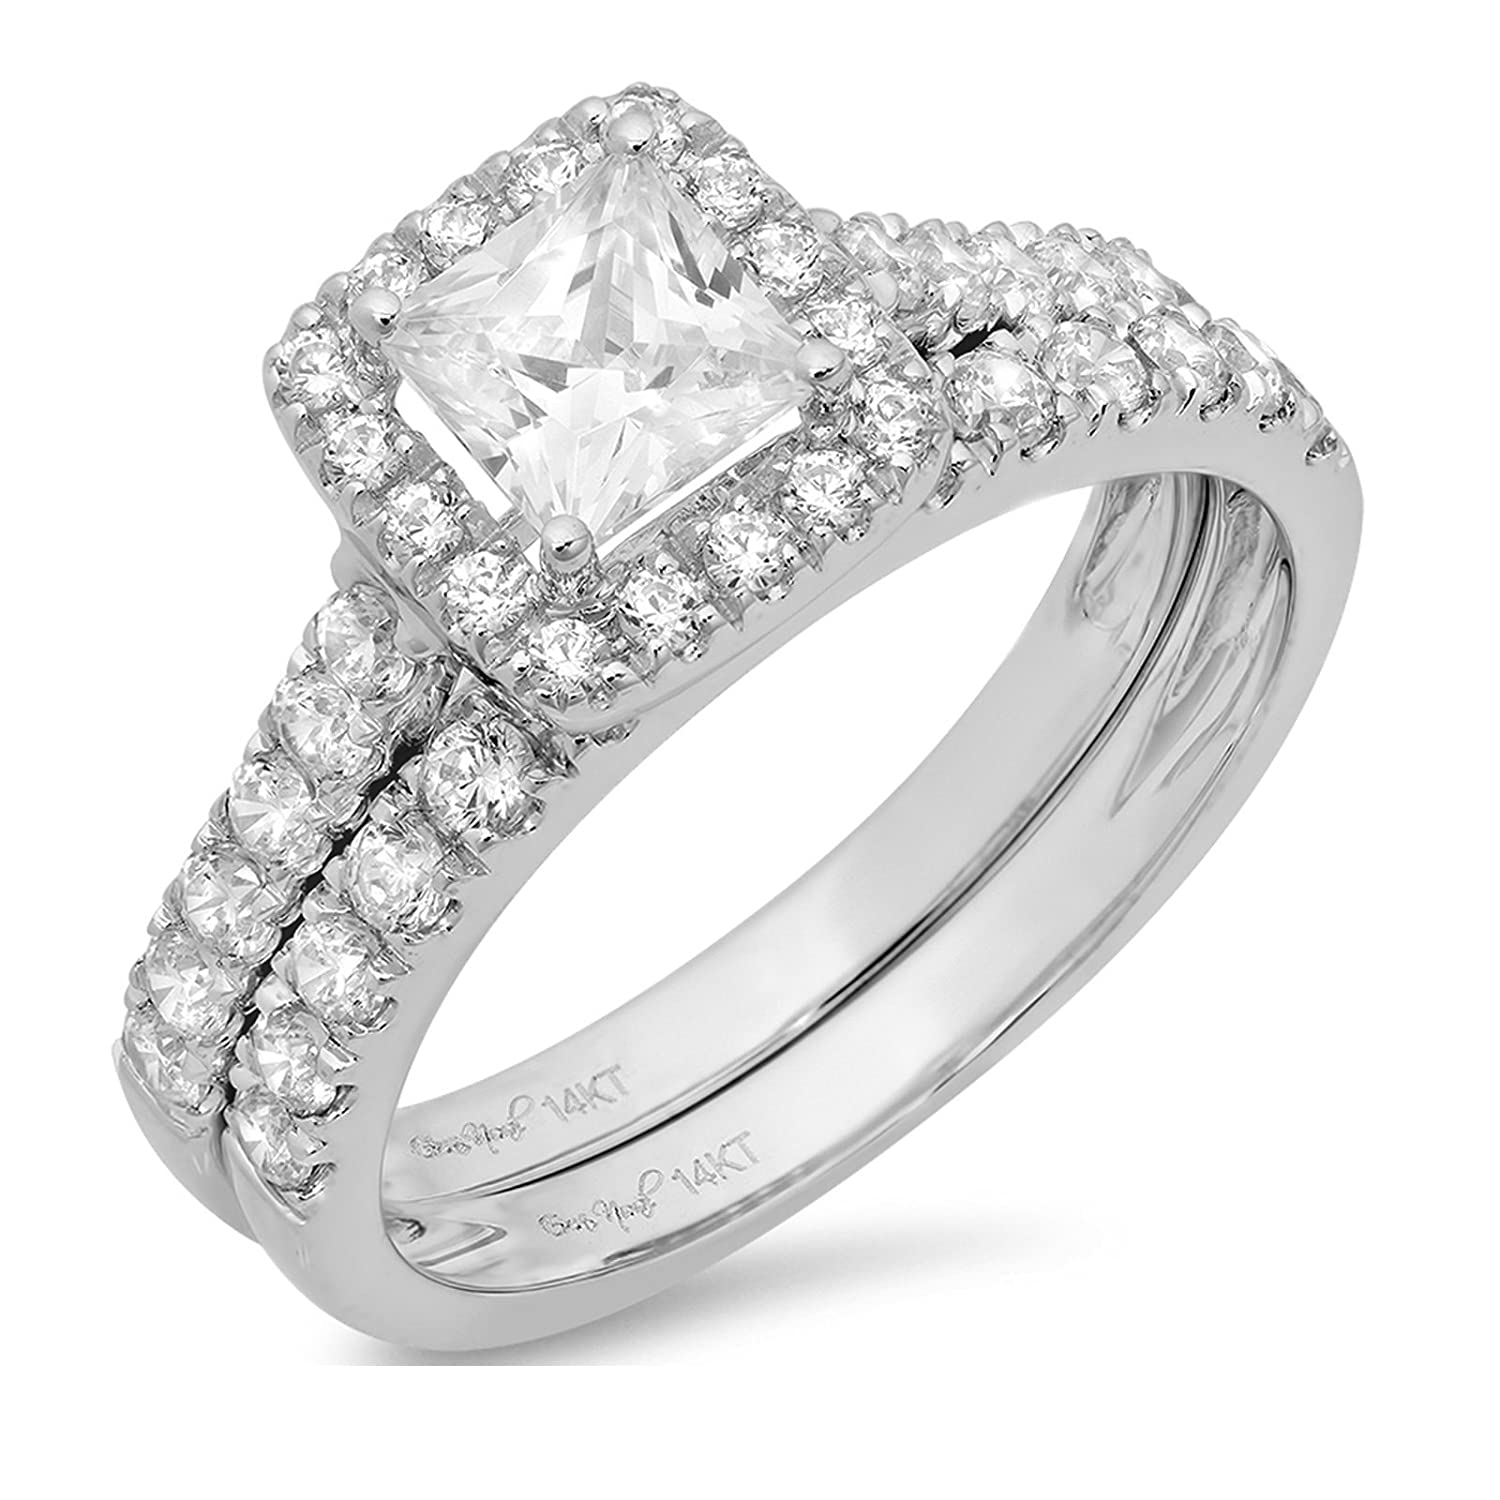 Amazon Clara Pucci 1 5 CT Princess Cut Pave Halo Bridal